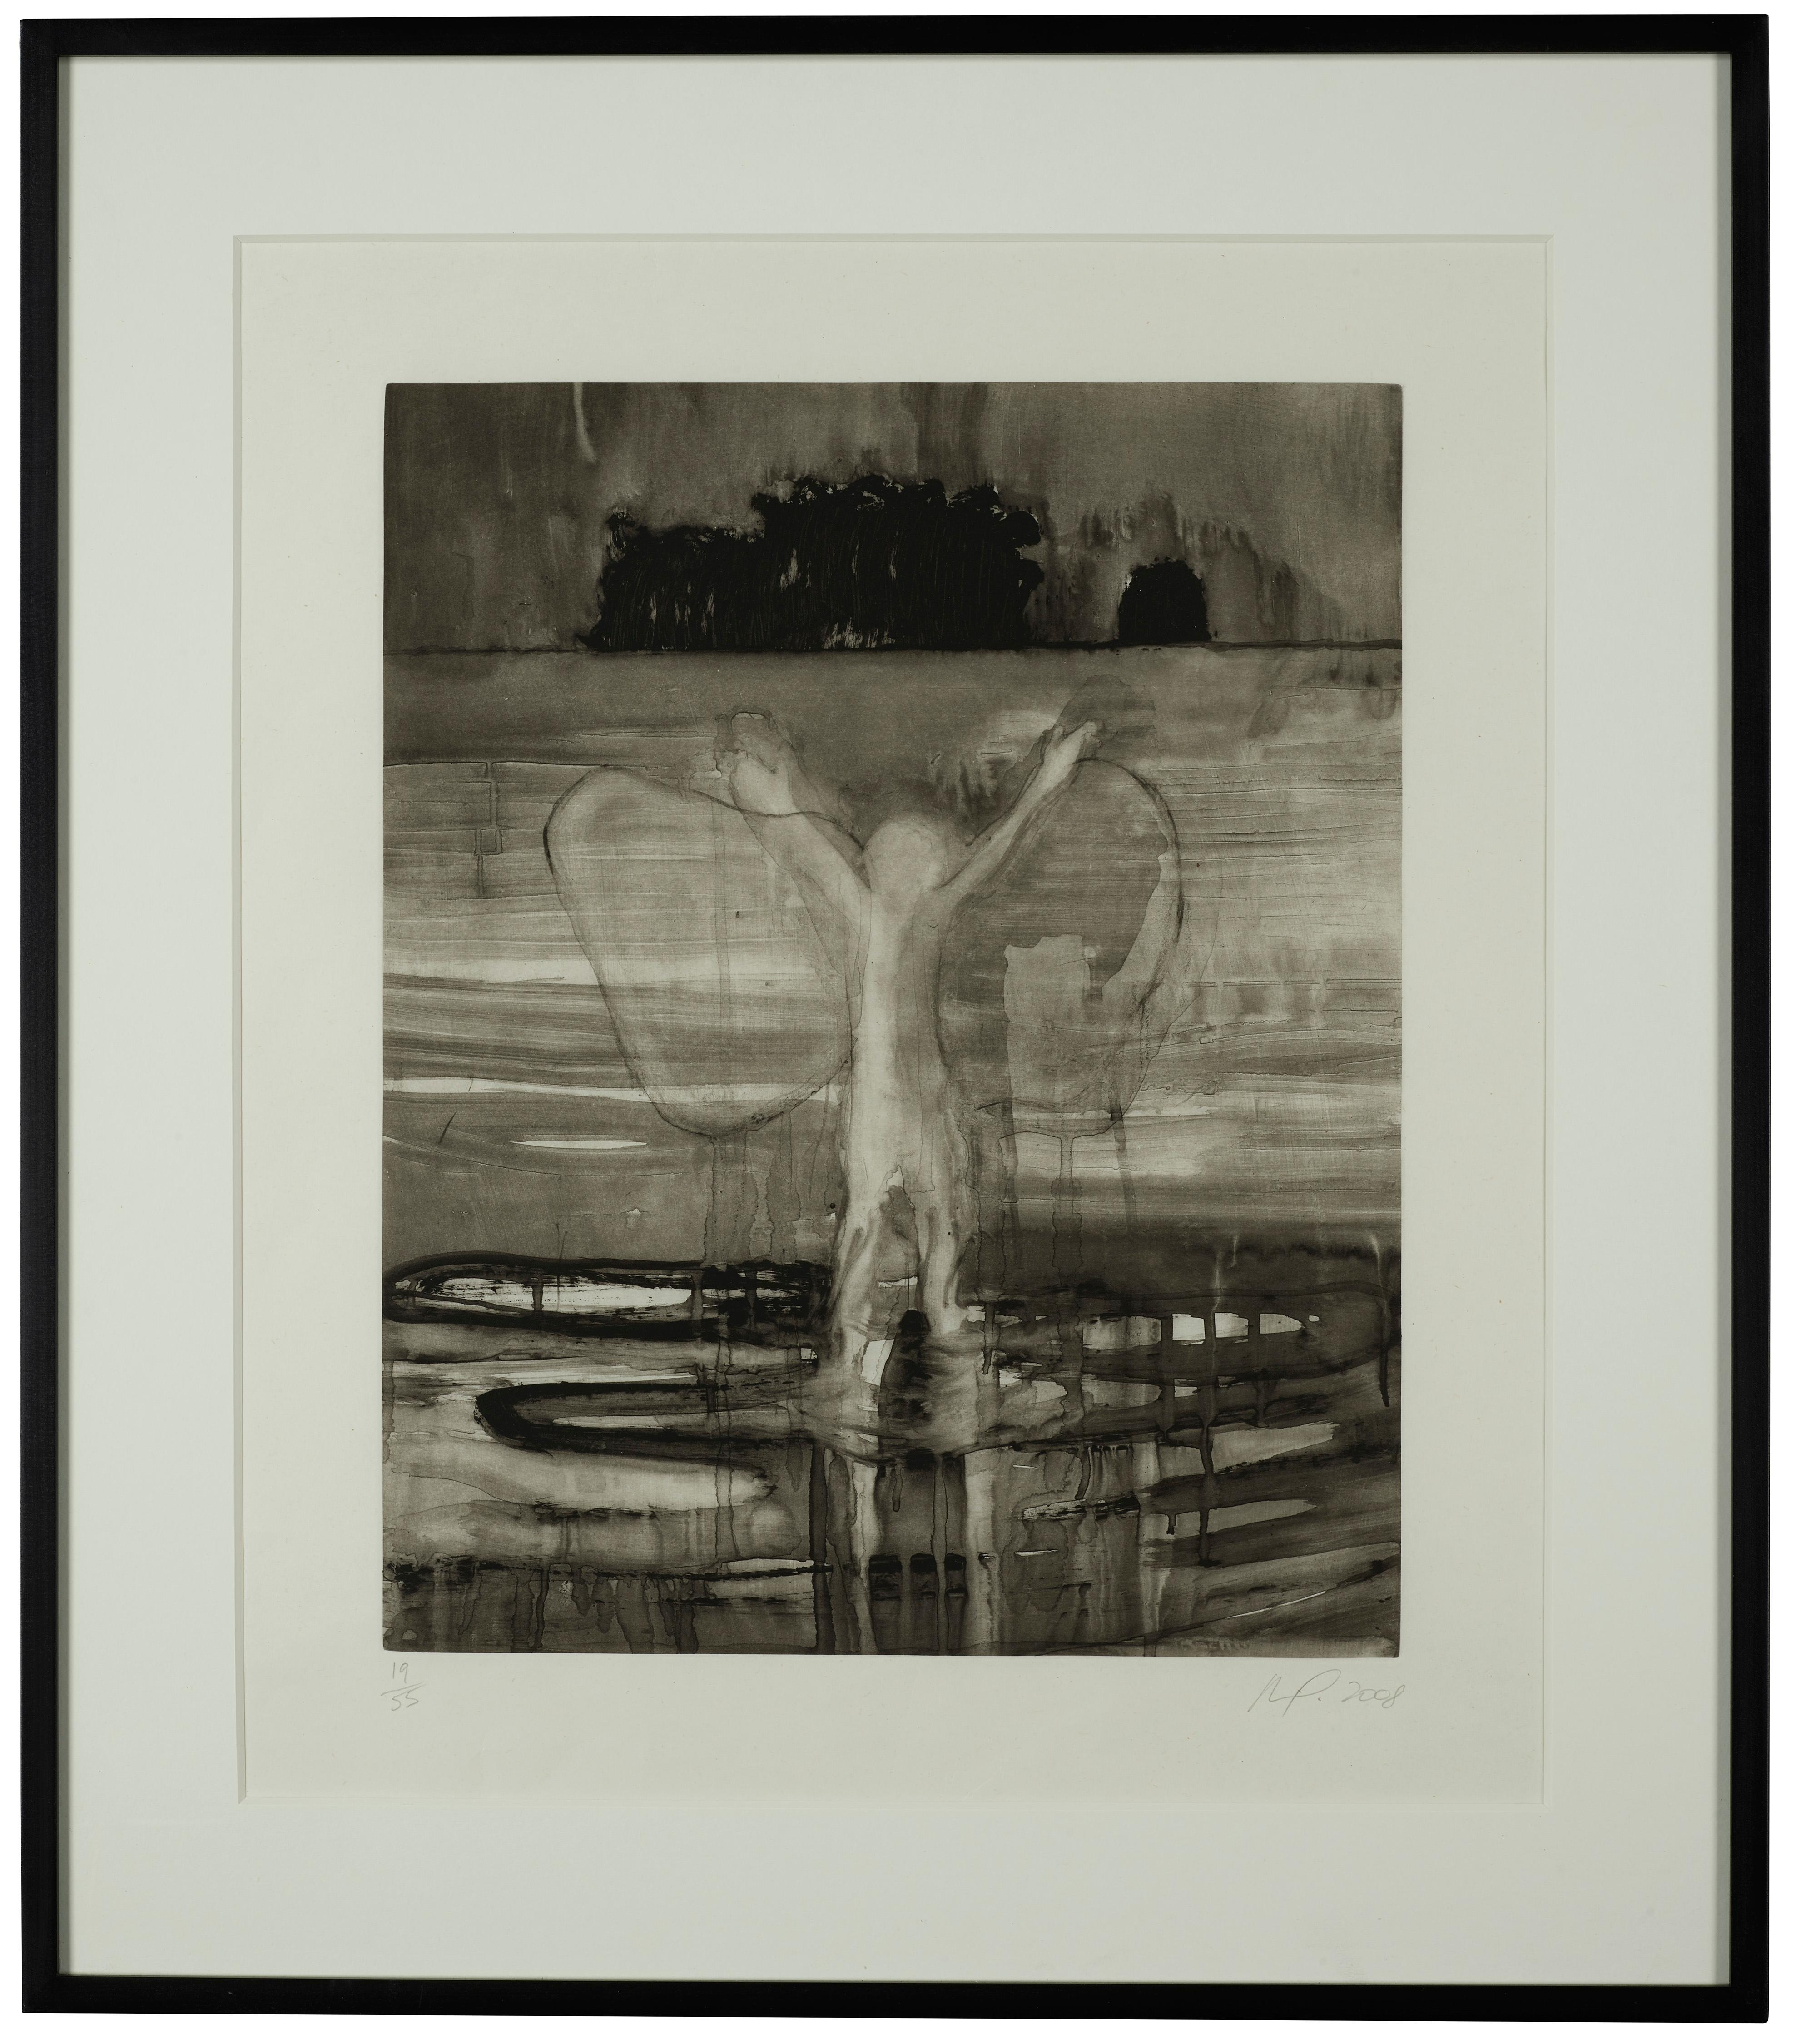 Paragrand I by Peter Doig, Etching with Aquatint on Japanese Paper